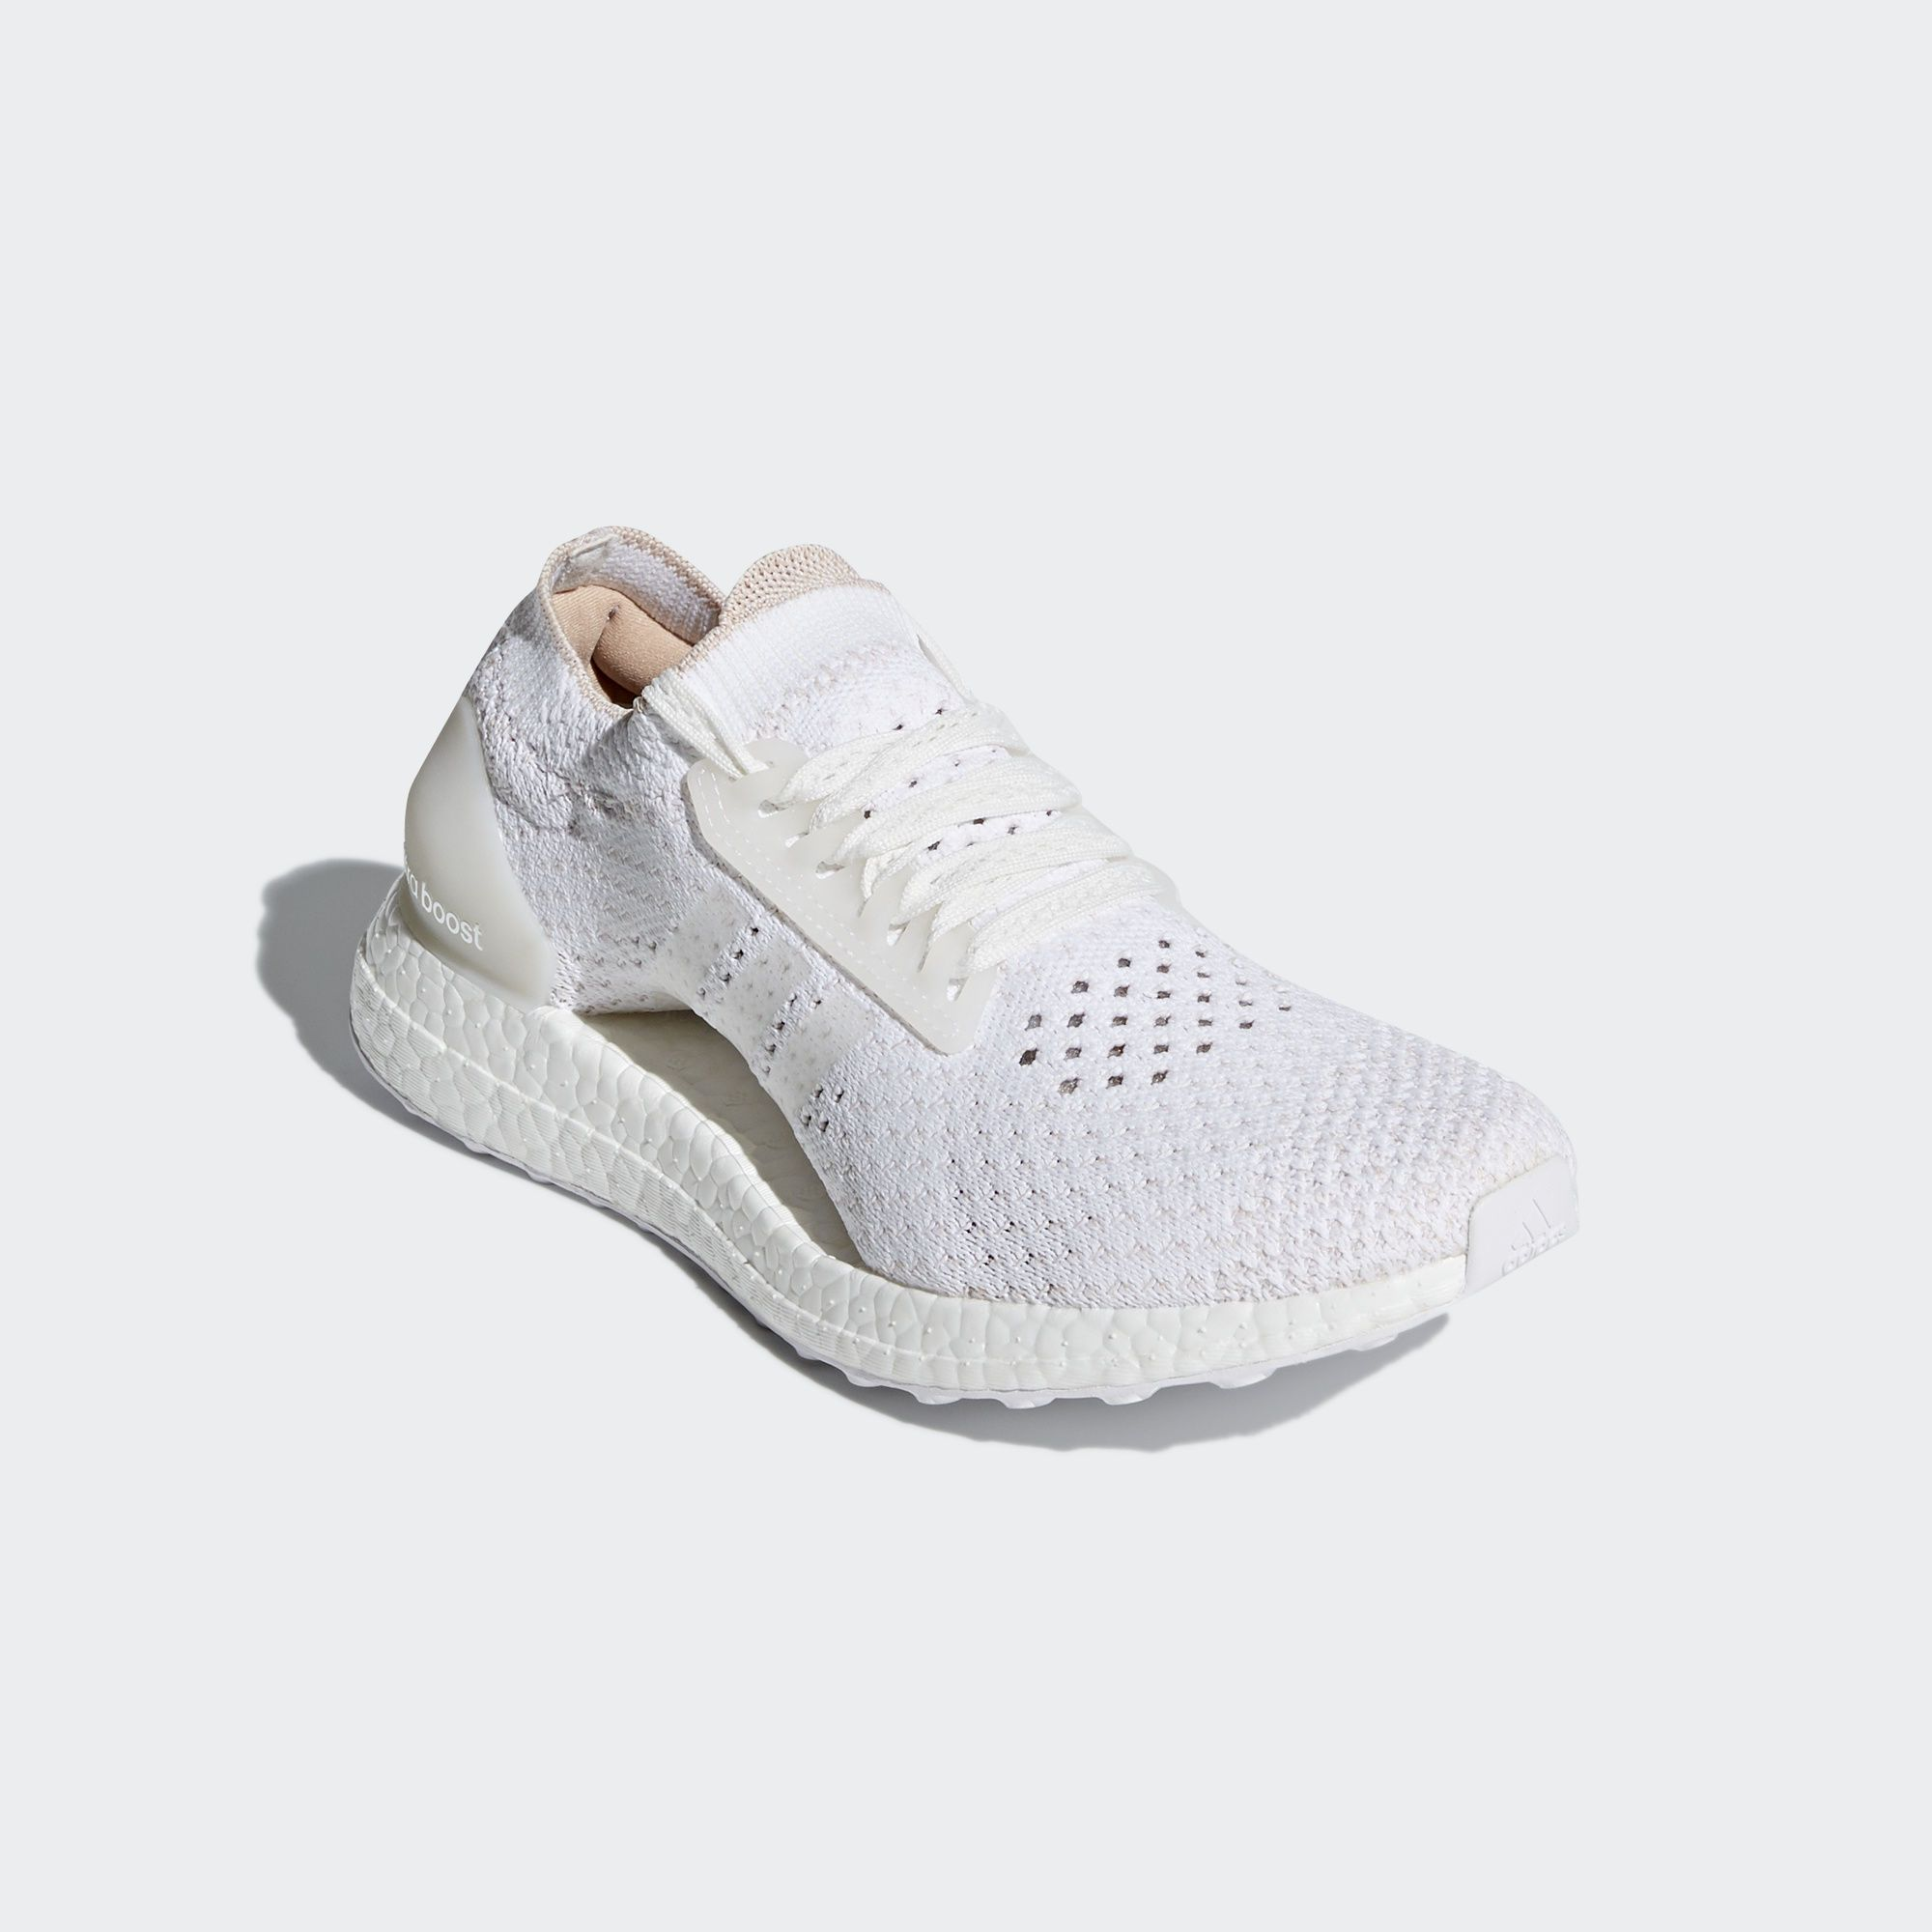 ee45eb76a33 adidas Ultraboost X Clima Shoes - White